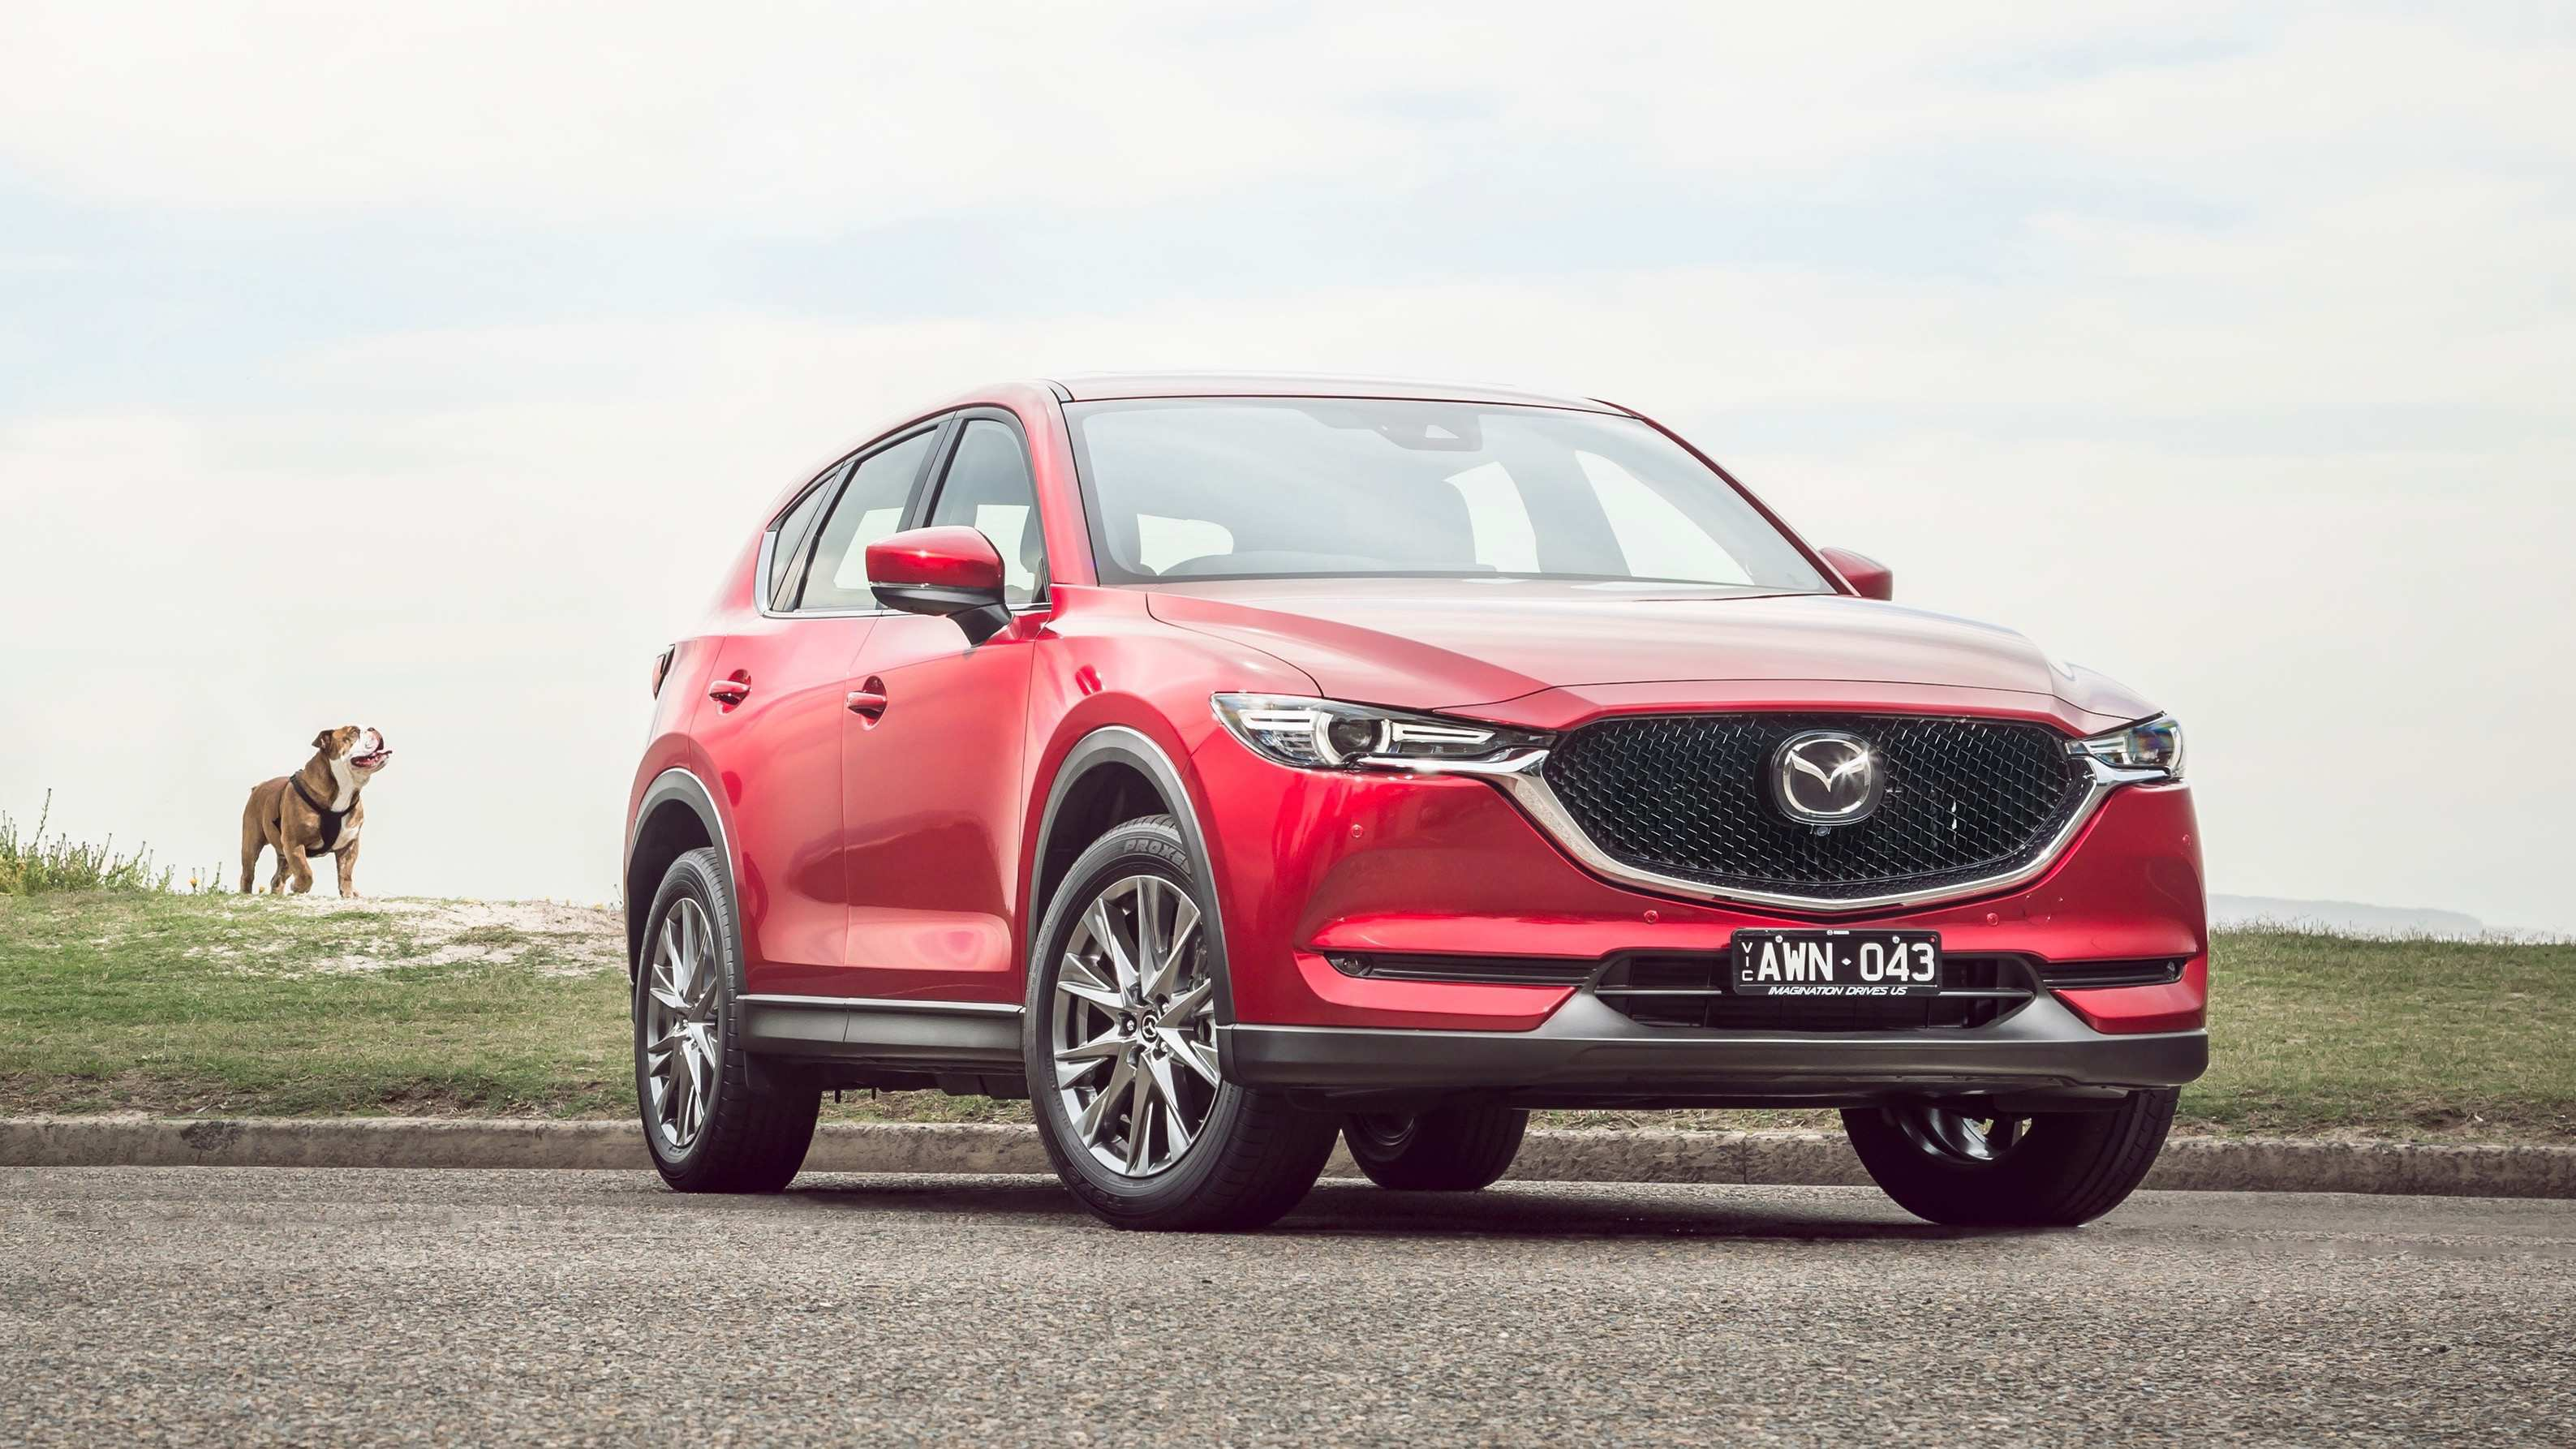 29 Gallery of Best Mazda Cx 5 2019 Australia Review And Price New Concept by Best Mazda Cx 5 2019 Australia Review And Price